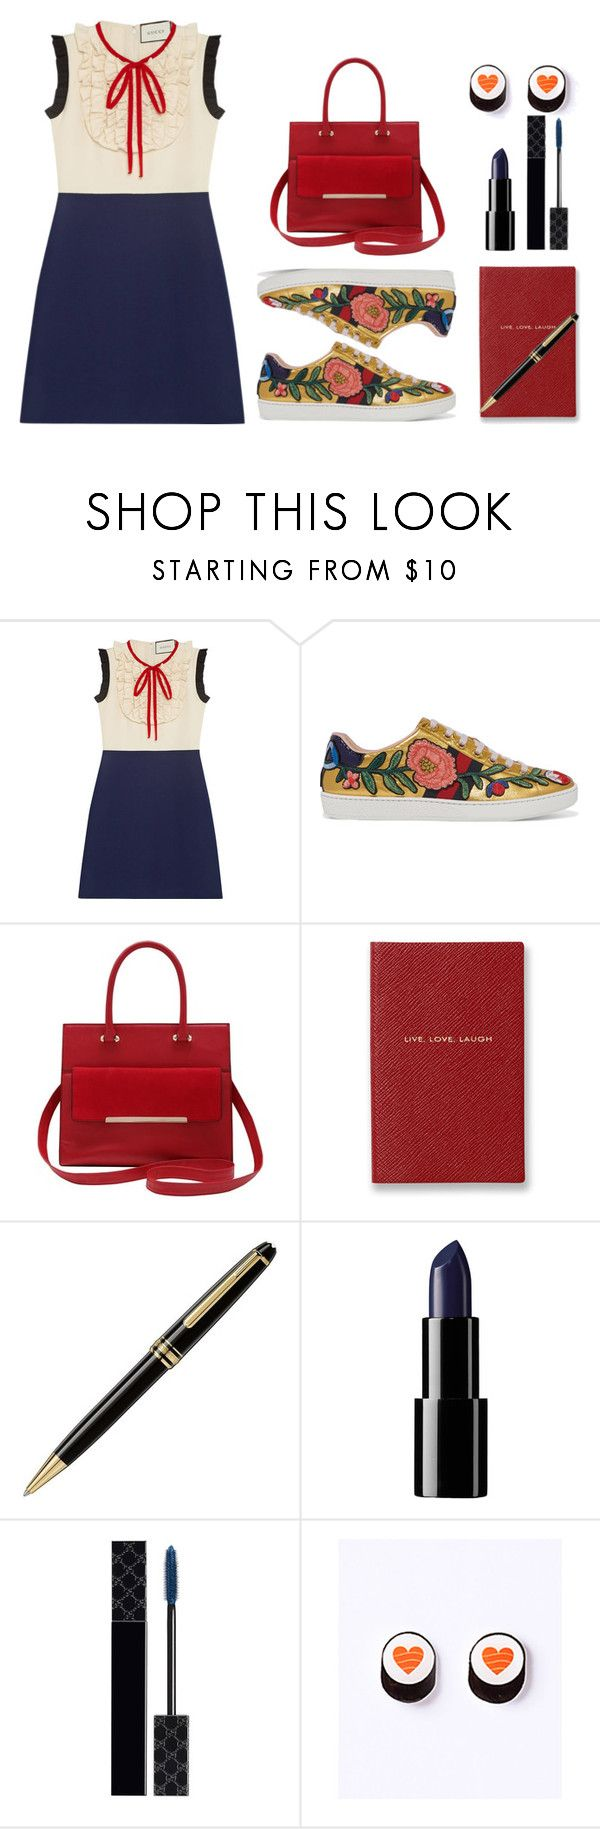 """gucci"" by art-gives-me-life ❤ liked on Polyvore featuring Gucci, M&Co, Smythson, Montblanc, contestentry and totallytoday"